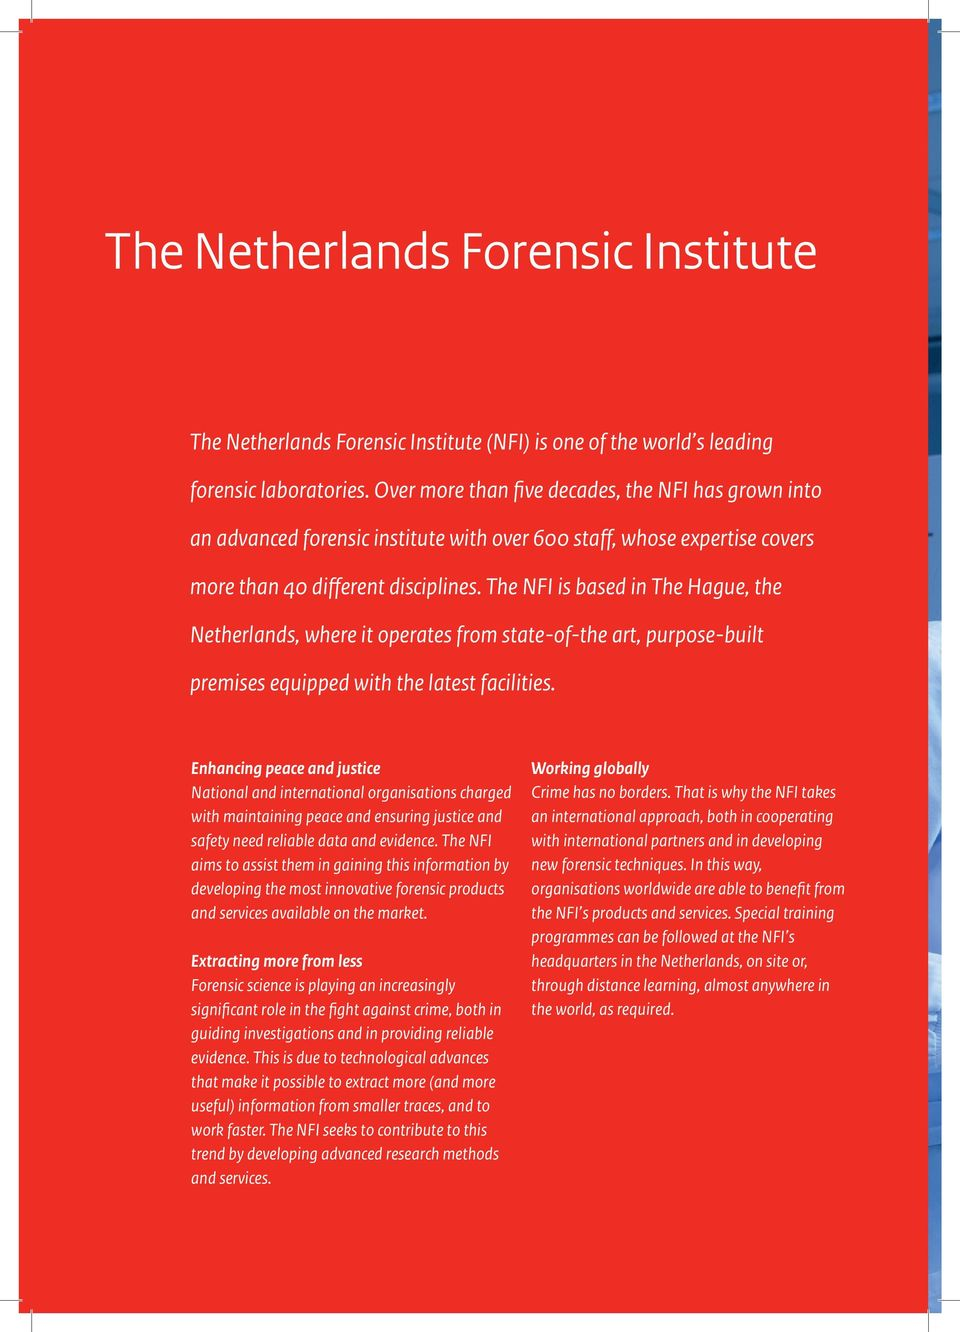 The NFI is based in The Hague, the Netherlands, where it operates from state-of-the art, purpose-built premises equipped with the latest facilities.